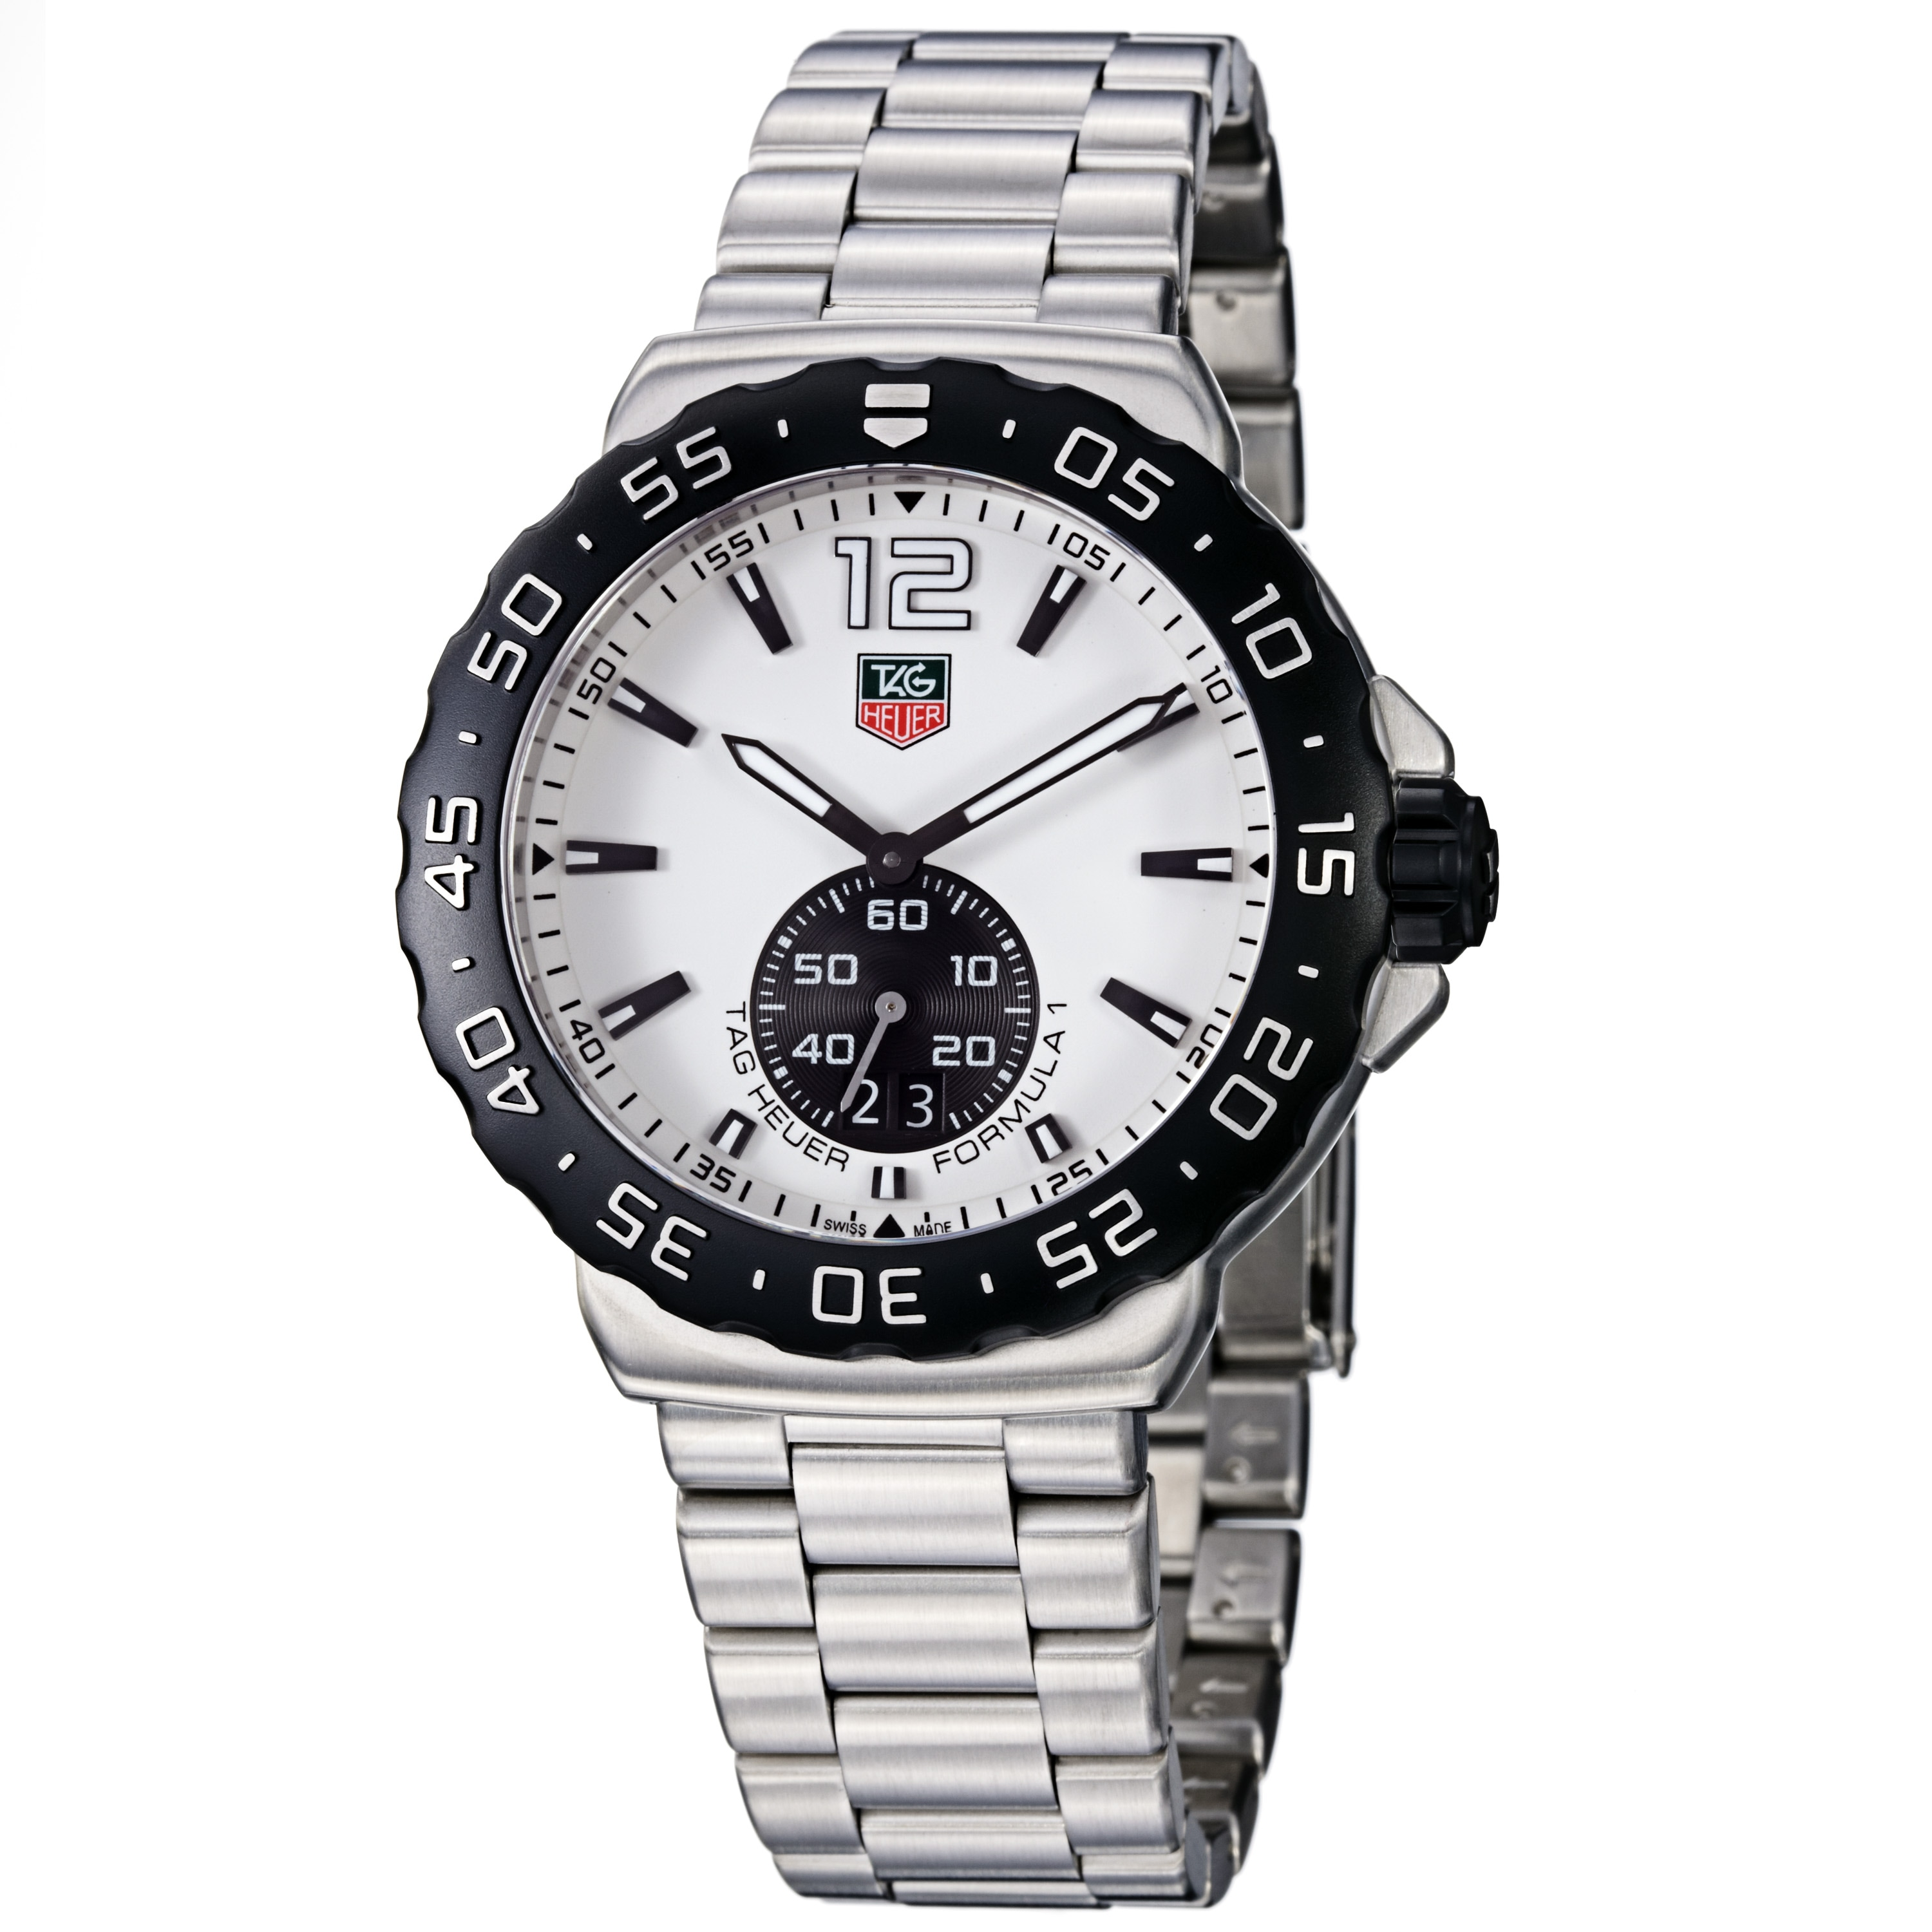 Tag Heuer Men's WAU1111.BA0858 'Formula 1' White Dial Stainless Steel Watch